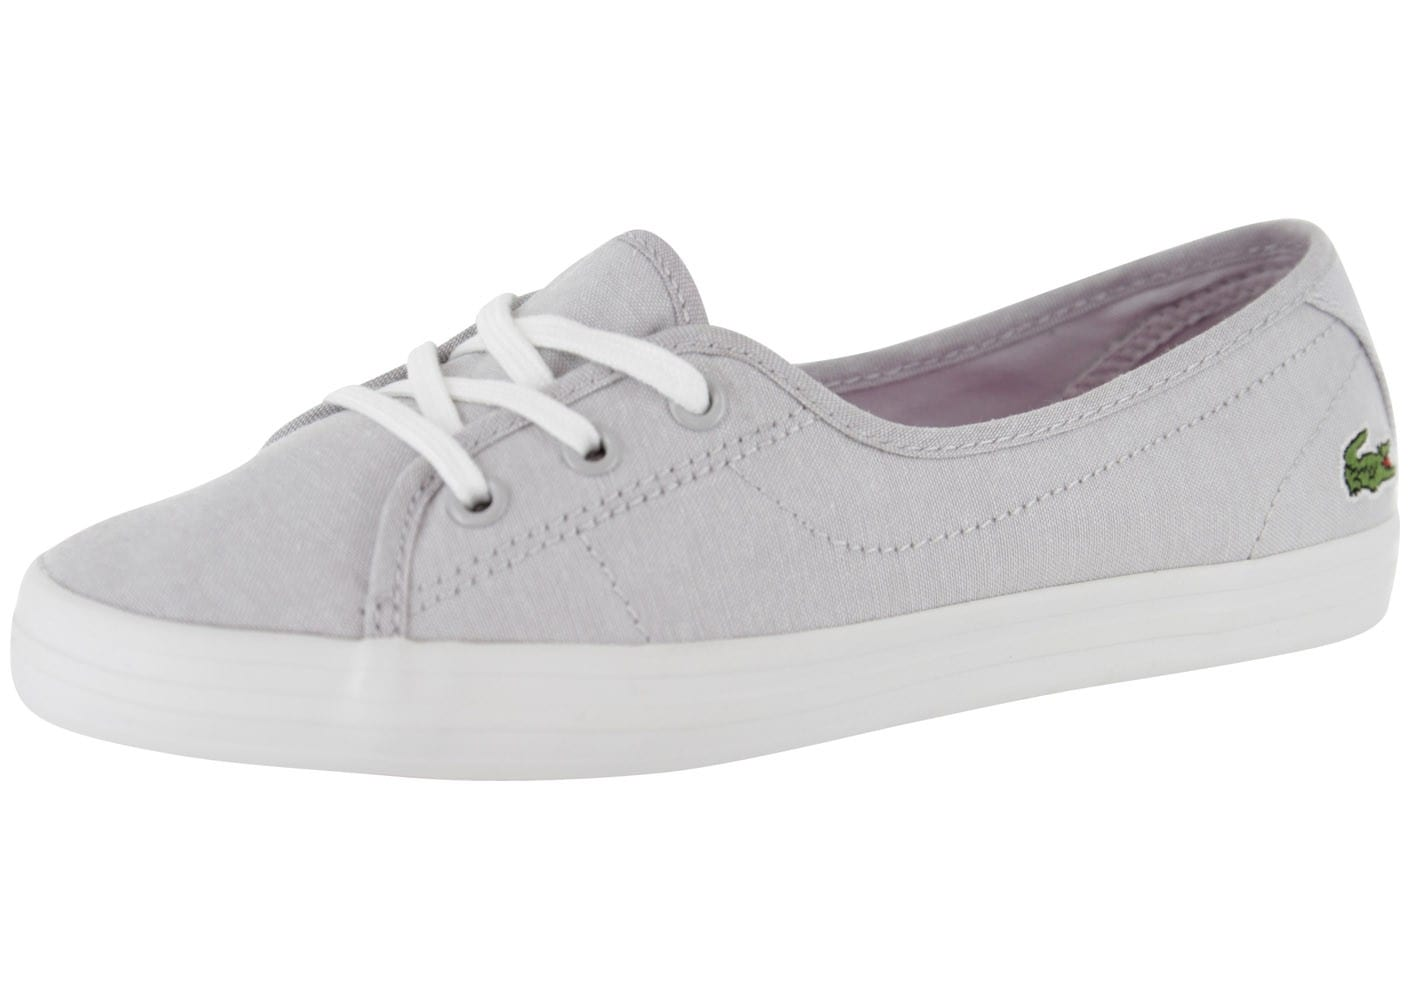 Lacoste Ziane Chausport Chunky Chaussures Grise qfazwTqg7